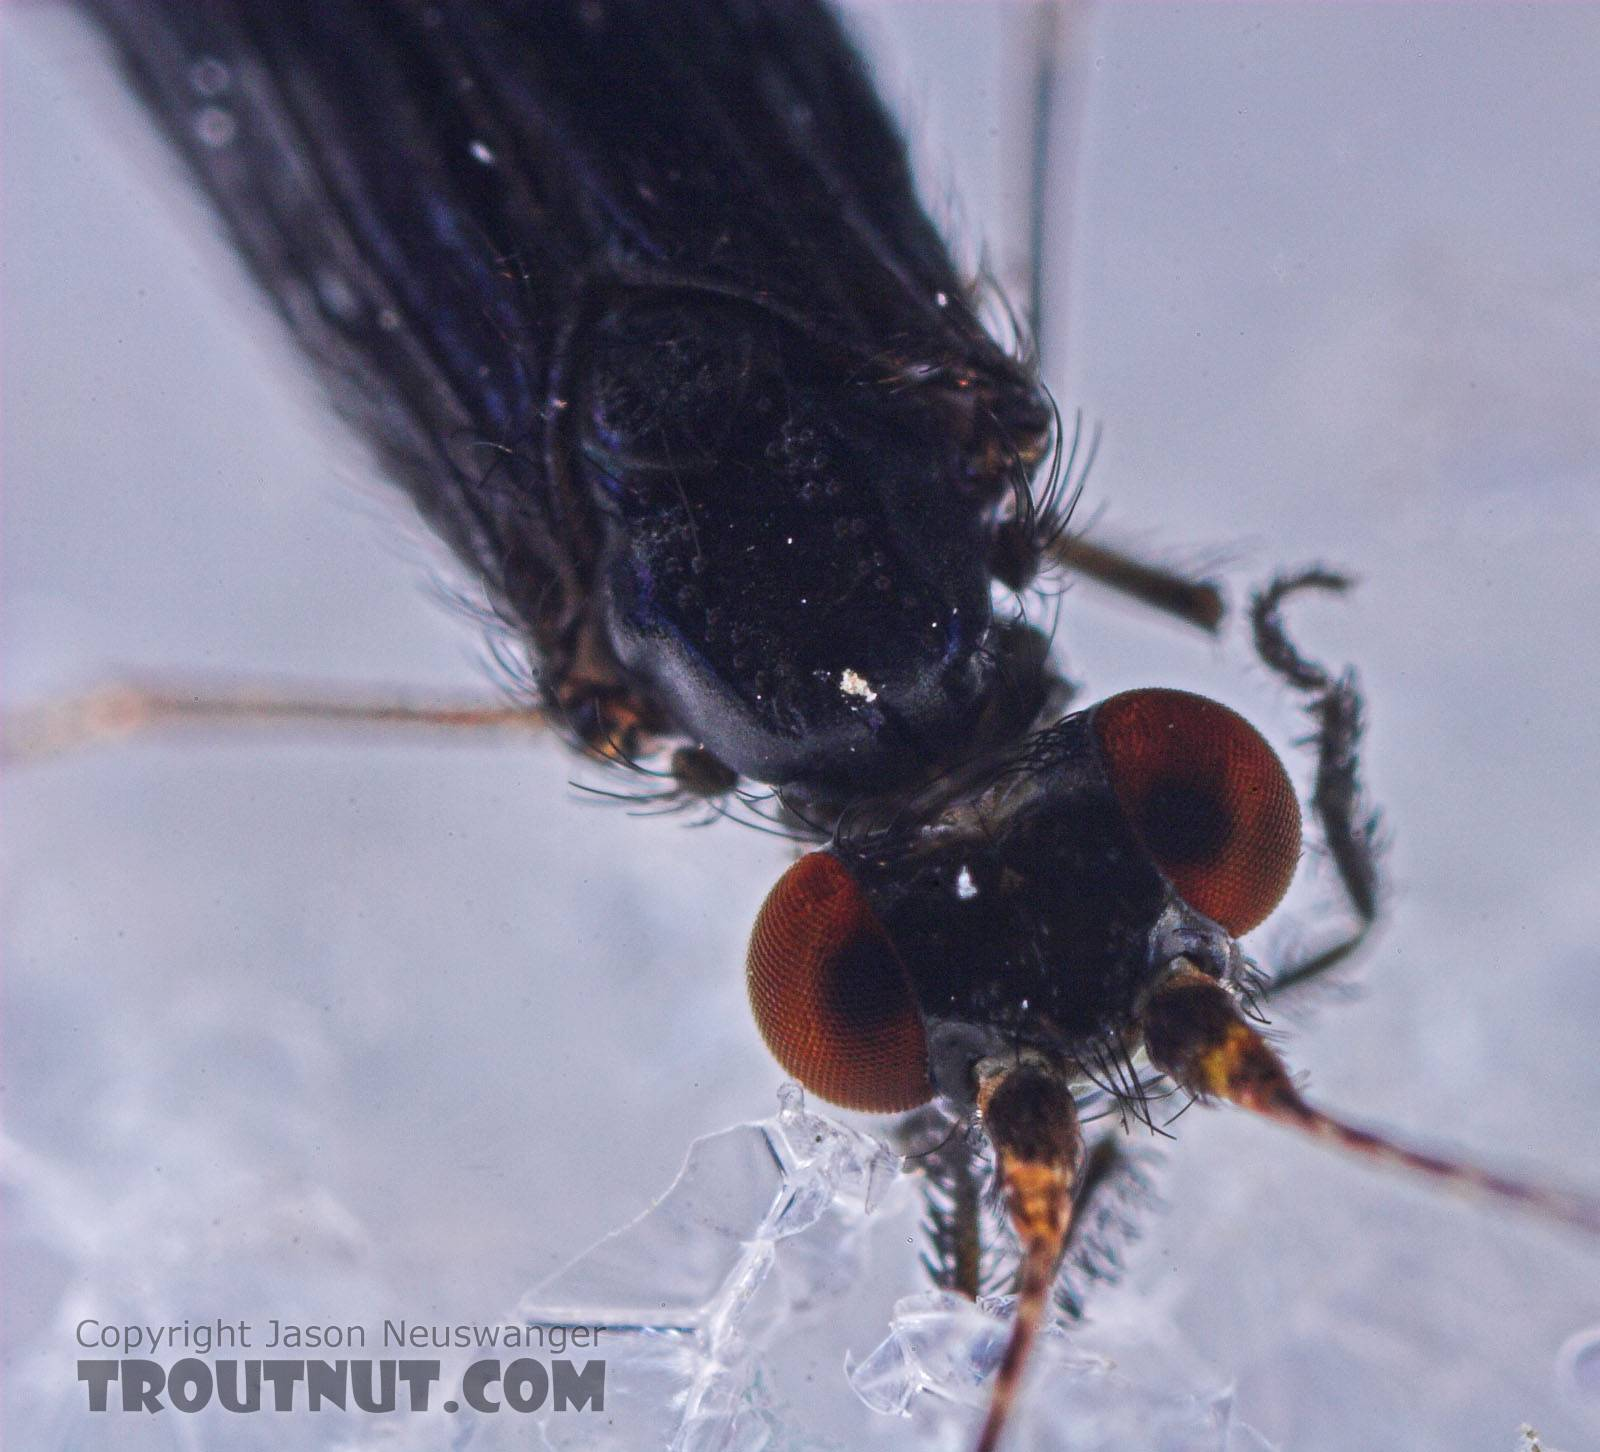 Male Mystacides sepulchralis (Black Dancer) Caddisfly Adult from the West Branch of Owego Creek in New York